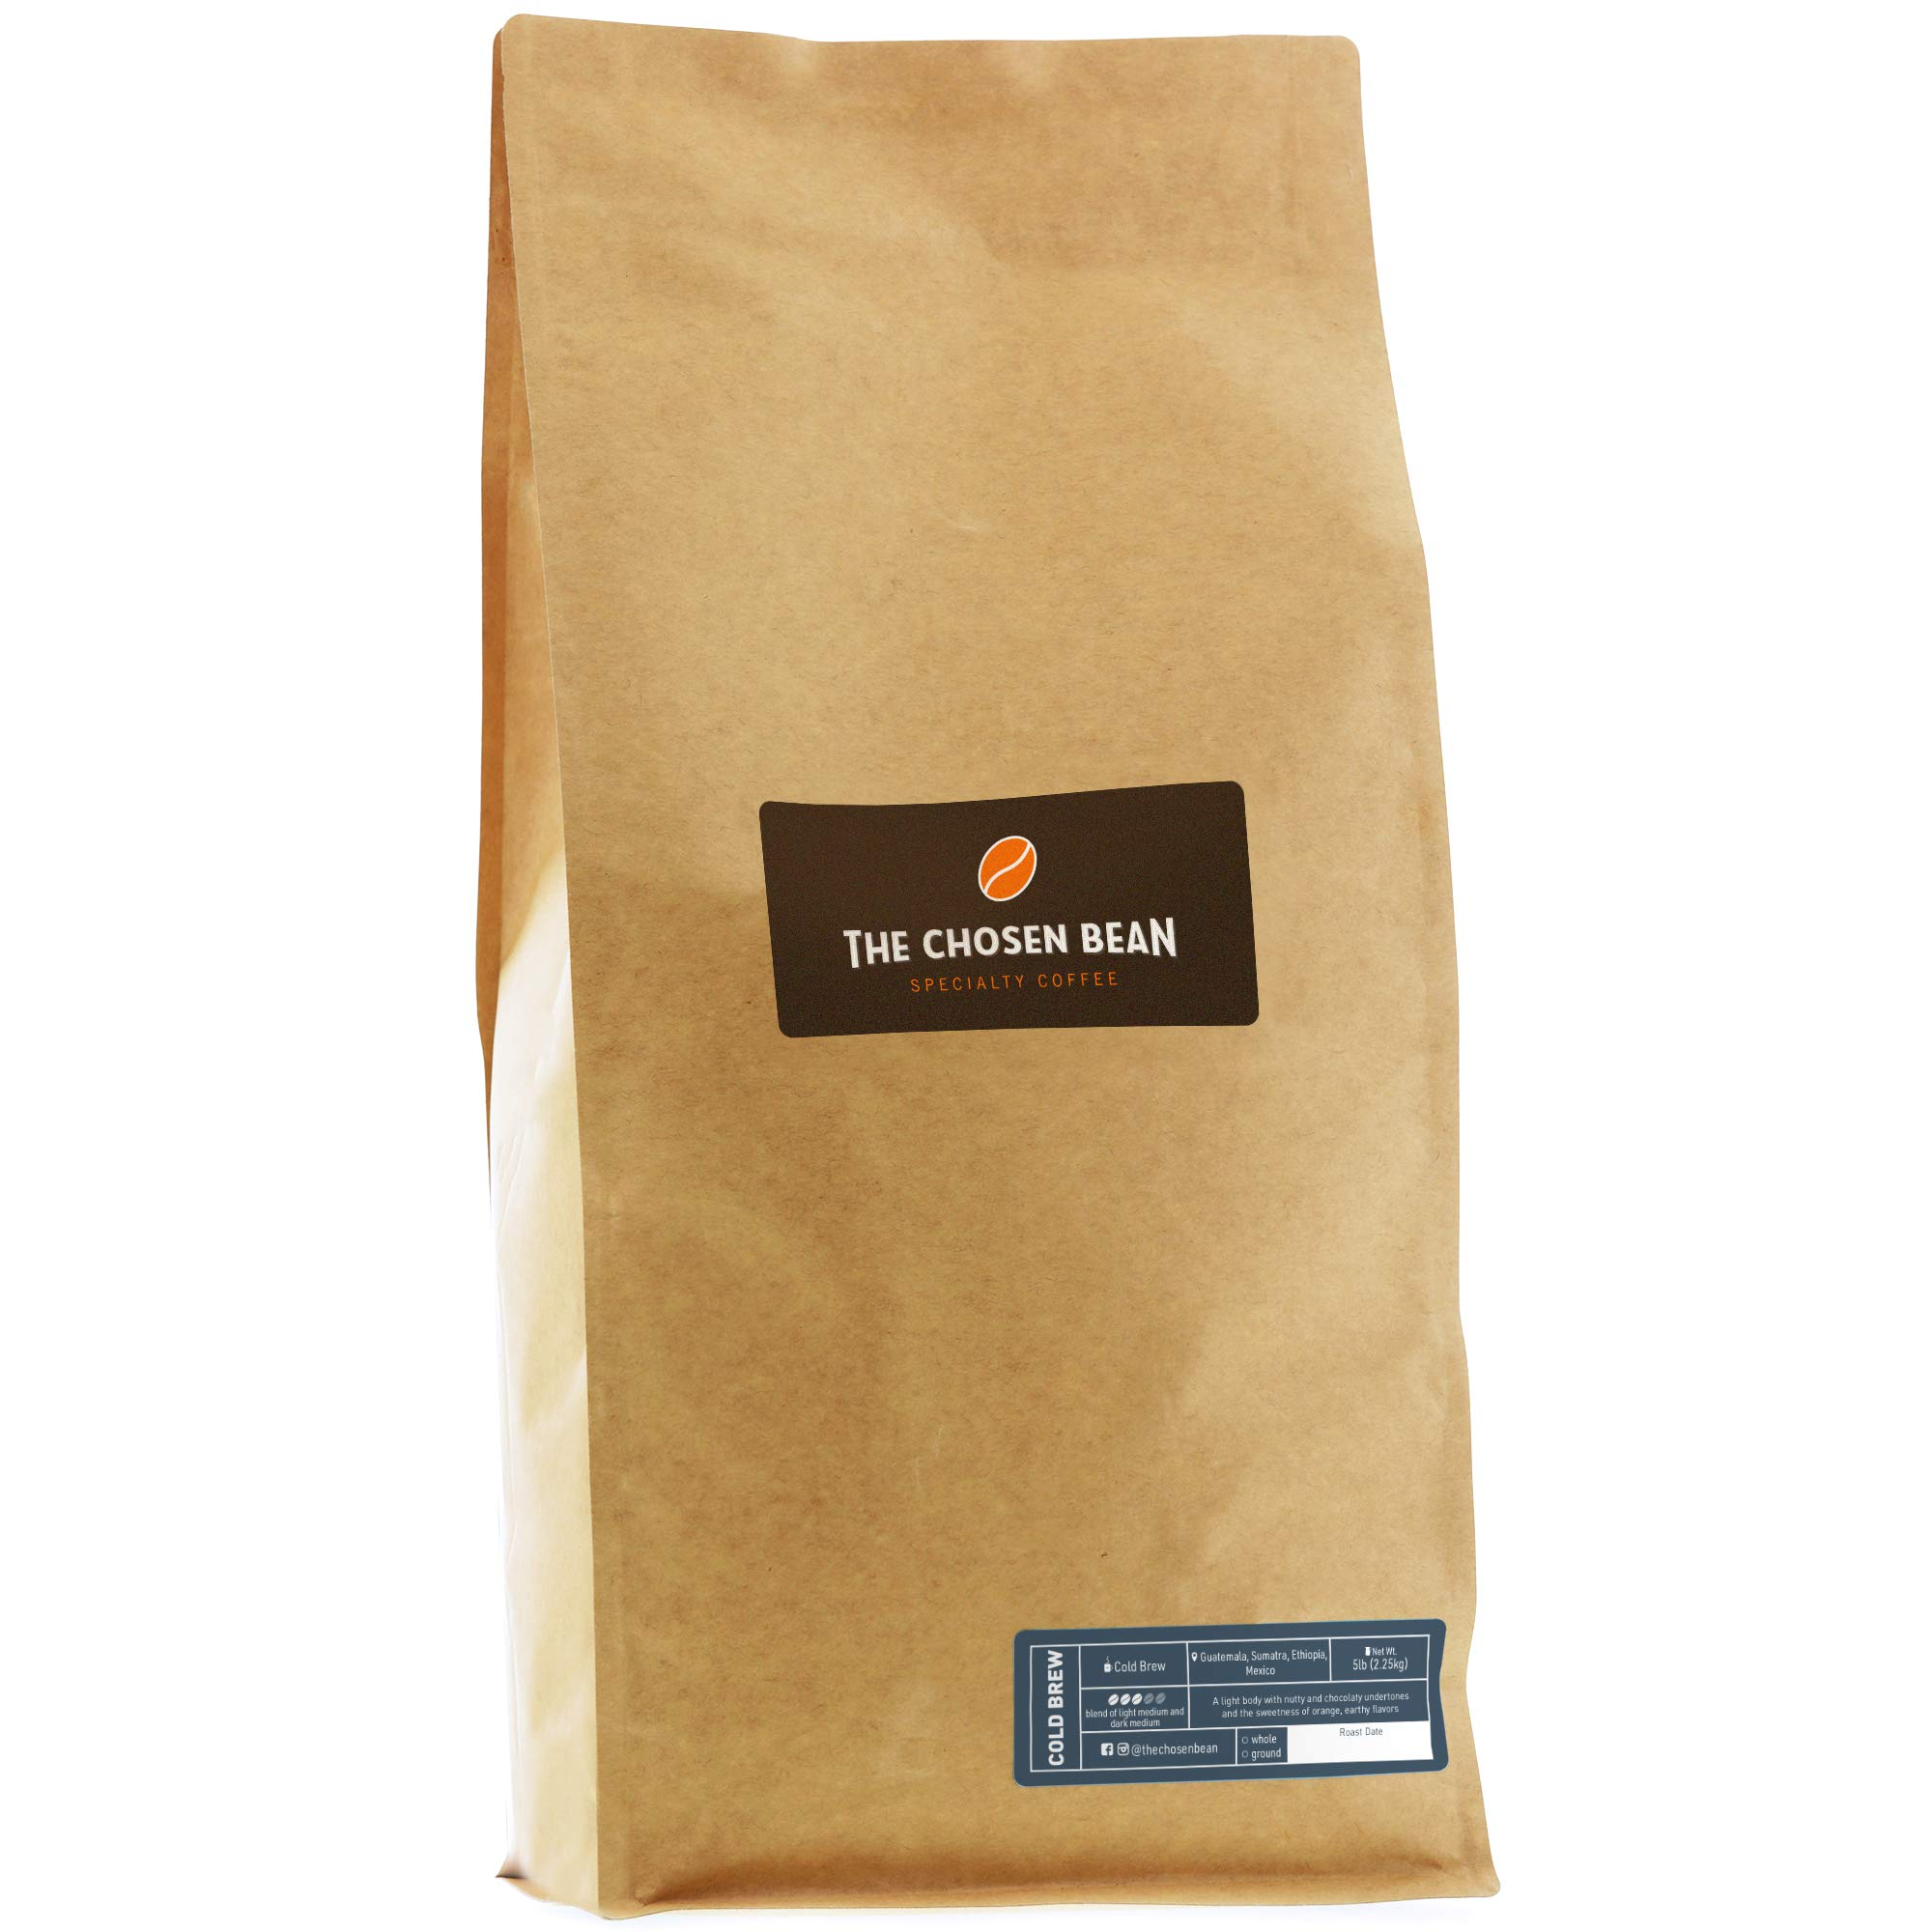 The Chosen Bean Premium Artisan Cold Brew Whole Coffee Beans, Small Batch Roasted, Organic and Fair Trade Roasters, 5 lbs